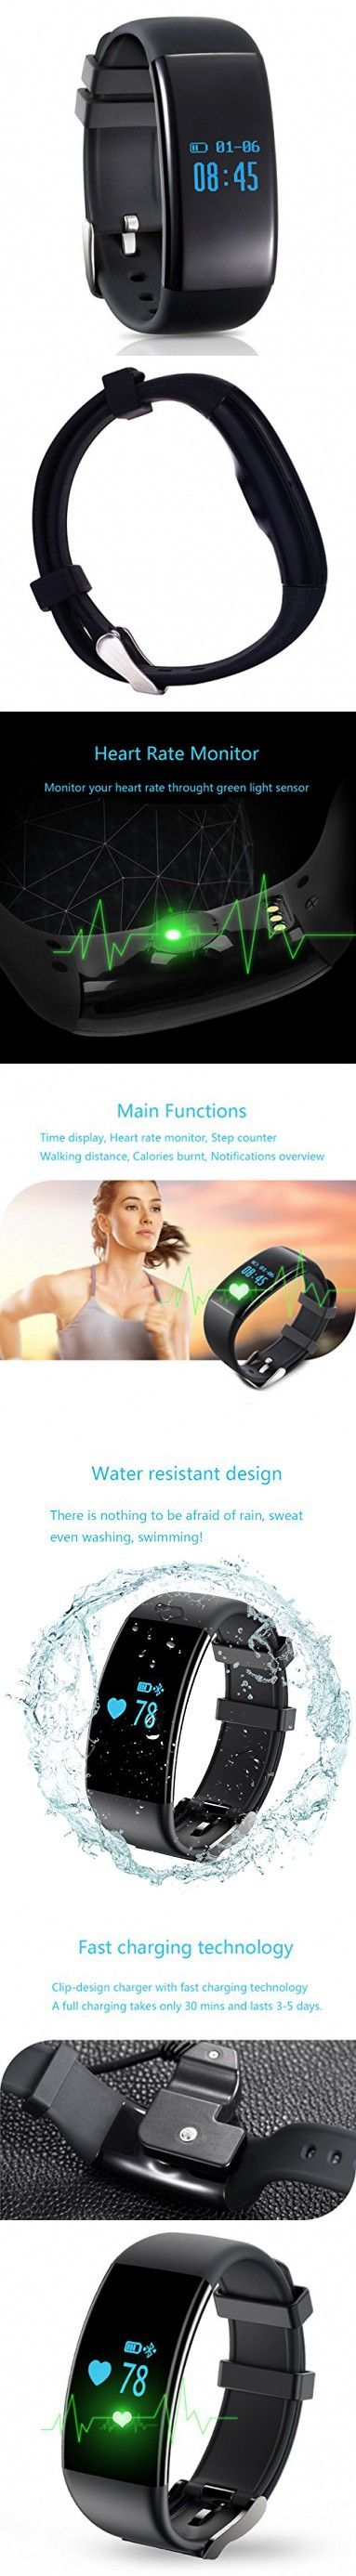 Heart rate apps such as pulse phone and heart rate - B3366d961282d797cd1031b5840d0157 Fitness Watch Heart Rate Monitor Jpg